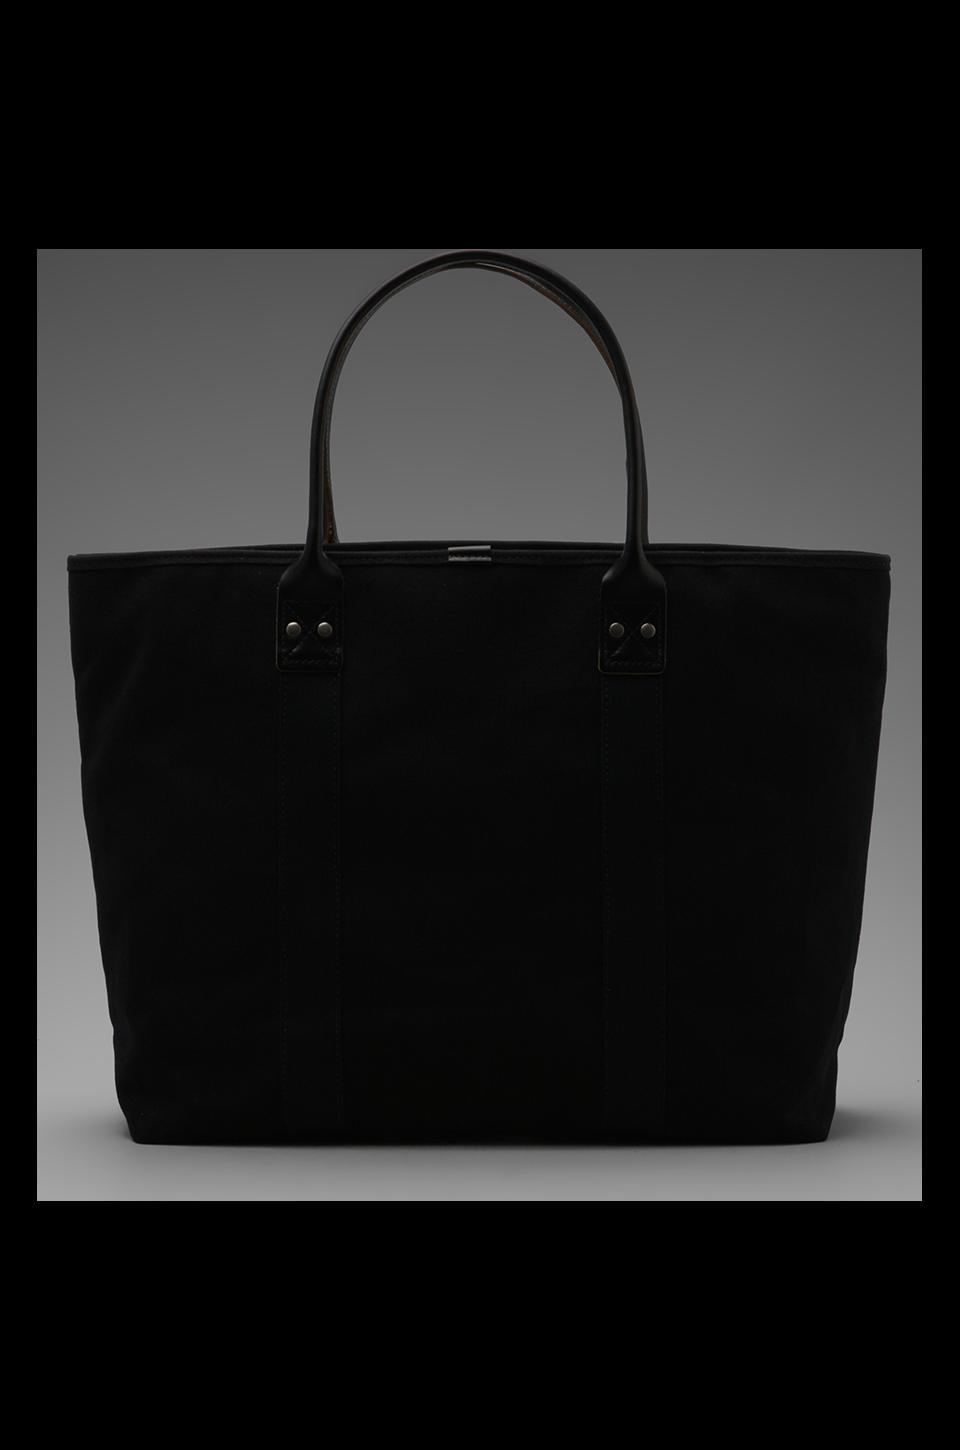 Billykirk No. 296 Large Tote in Black